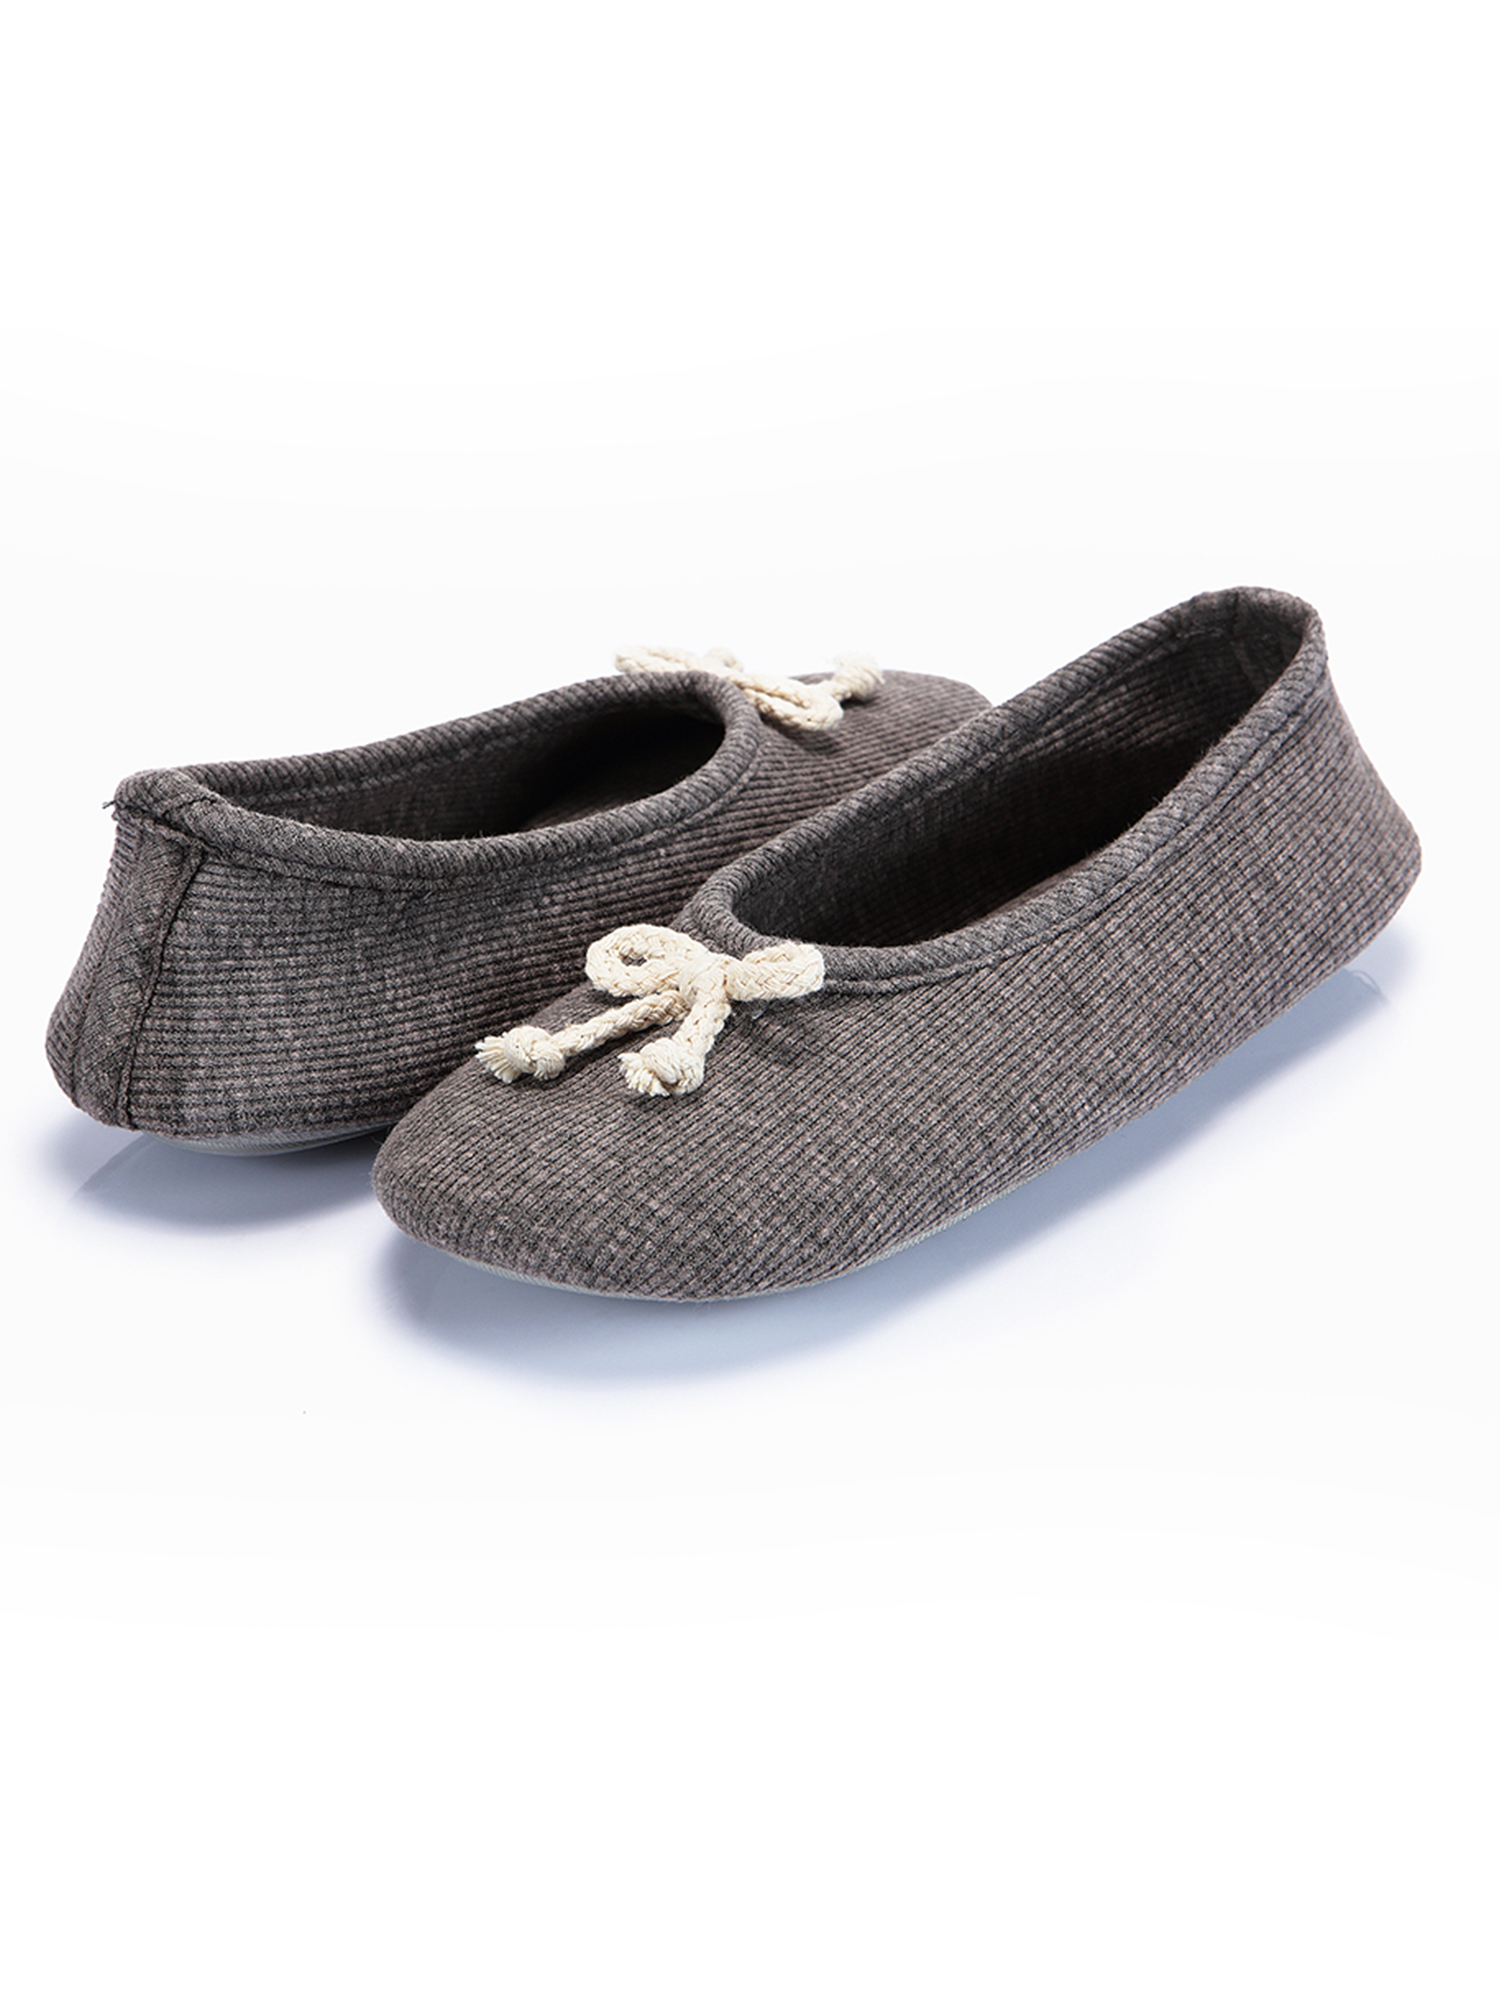 Jane-LEE Baseball House Slippers//Cotton Slippers//Flat Shoes//Indoor Slippers